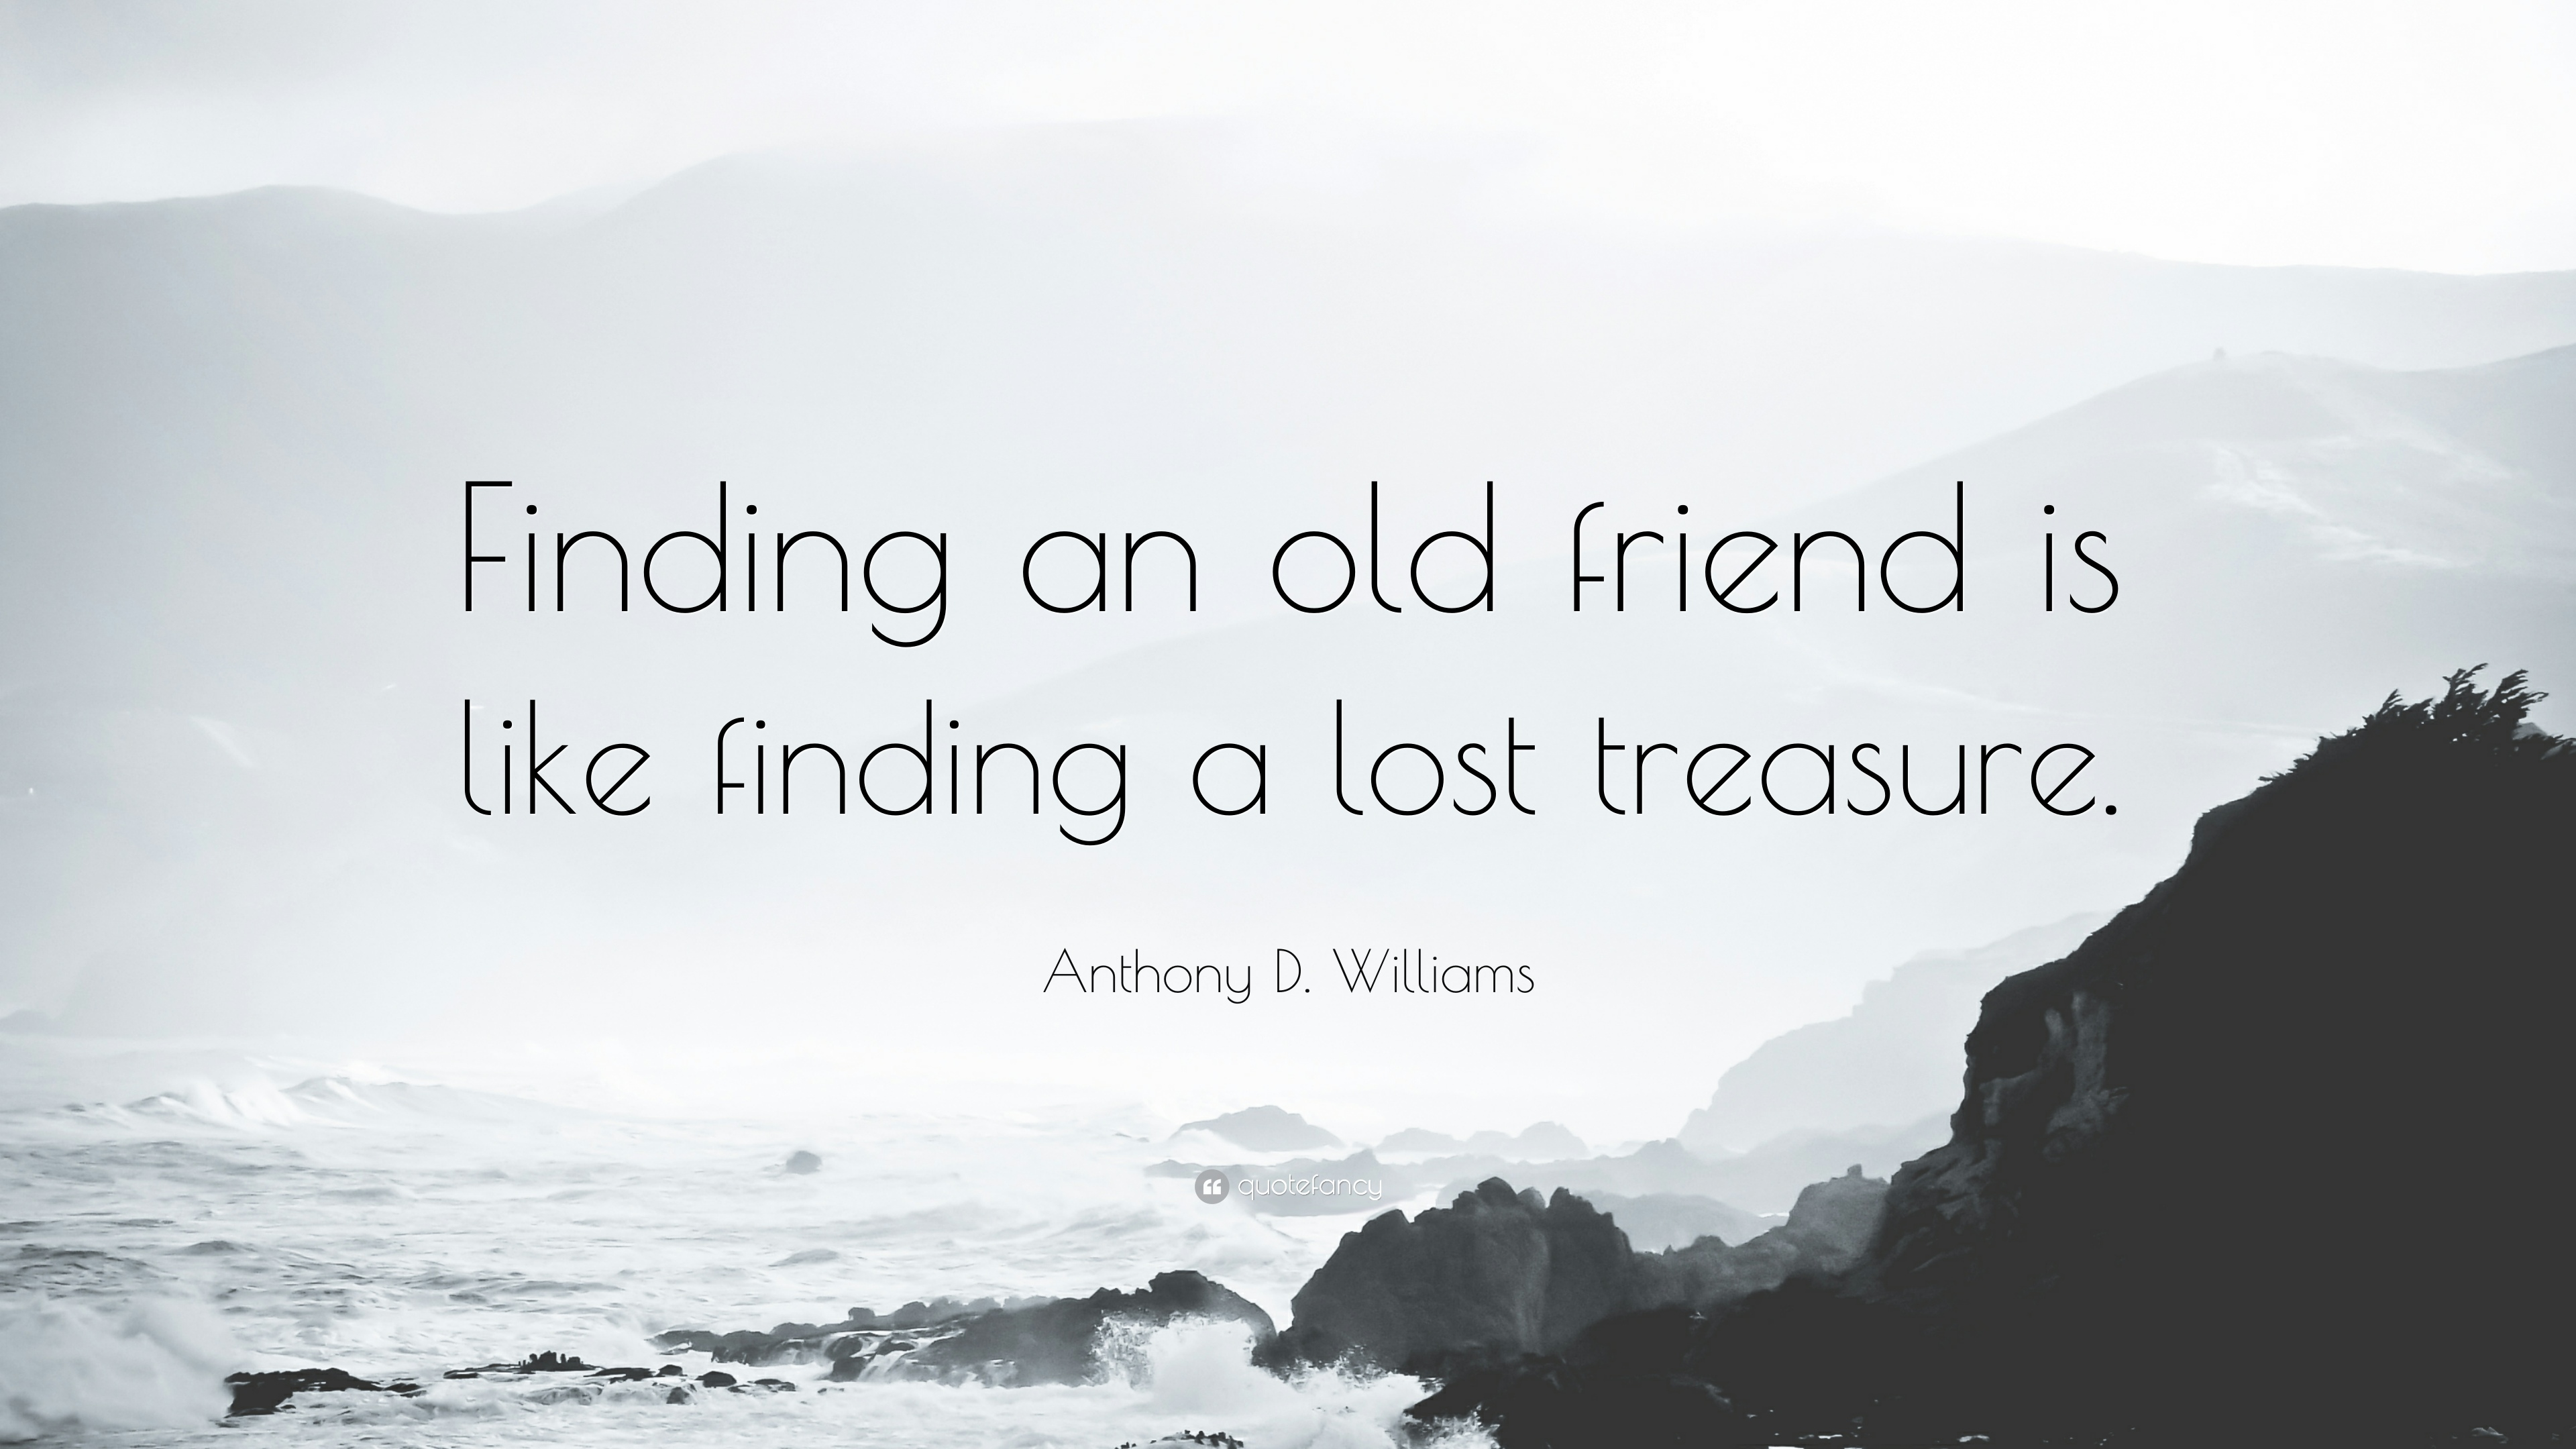 anthony d williams quote finding an old friend is like finding a